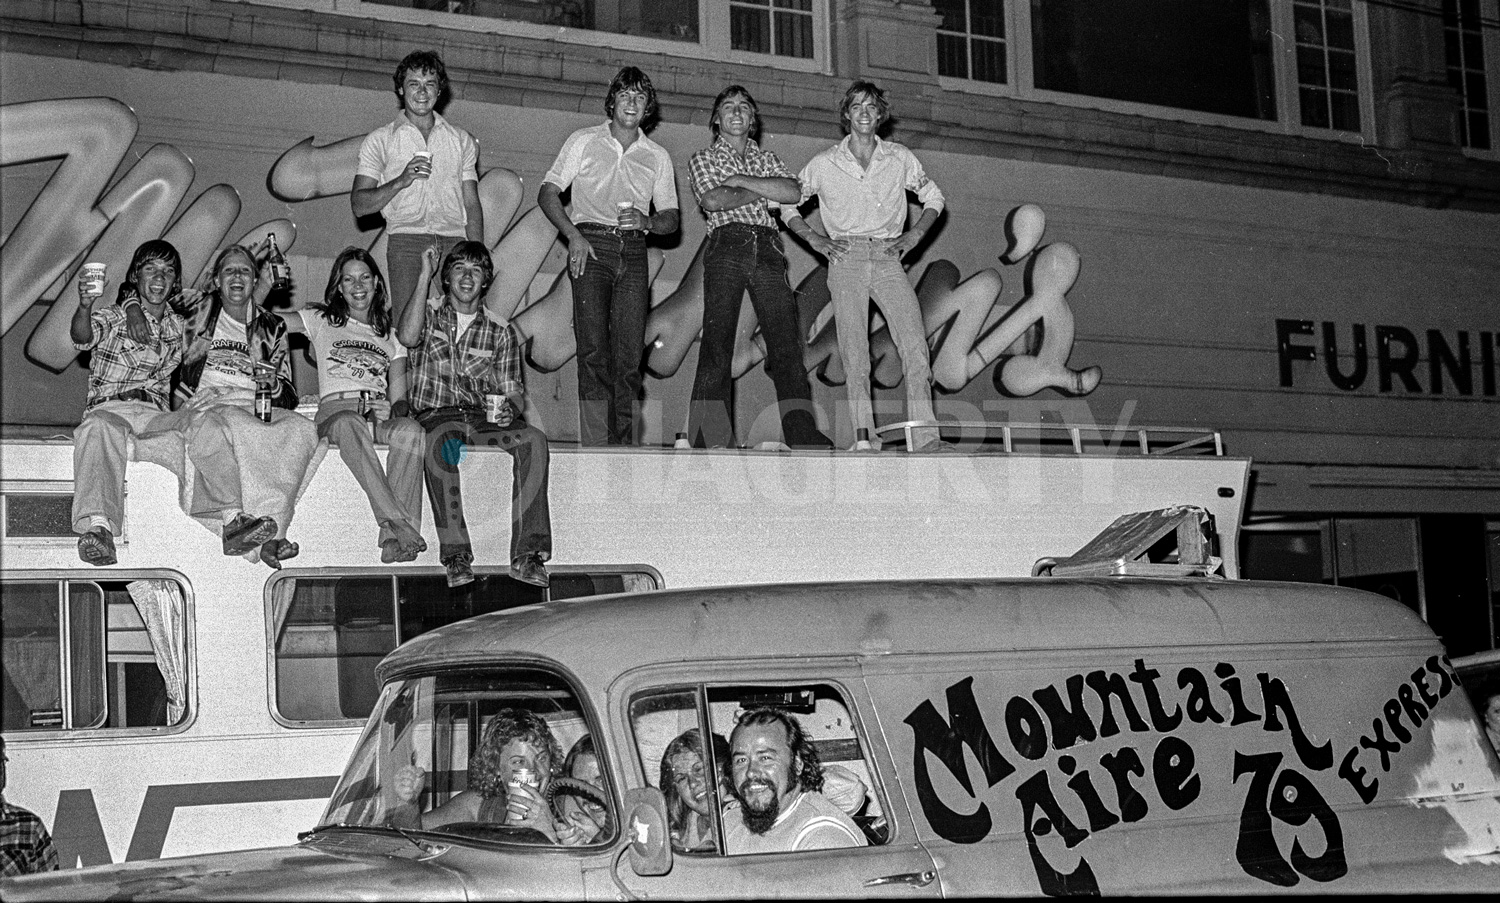 """Golub describes the gang on top of the Winnebago as """"Canal Bank Commandos"""" who would buy cases of beer, drive out to one of the Central Valley's numerous irrigation canals, and get drunk. Looks like they brought the party to downtown Modesto on this night."""